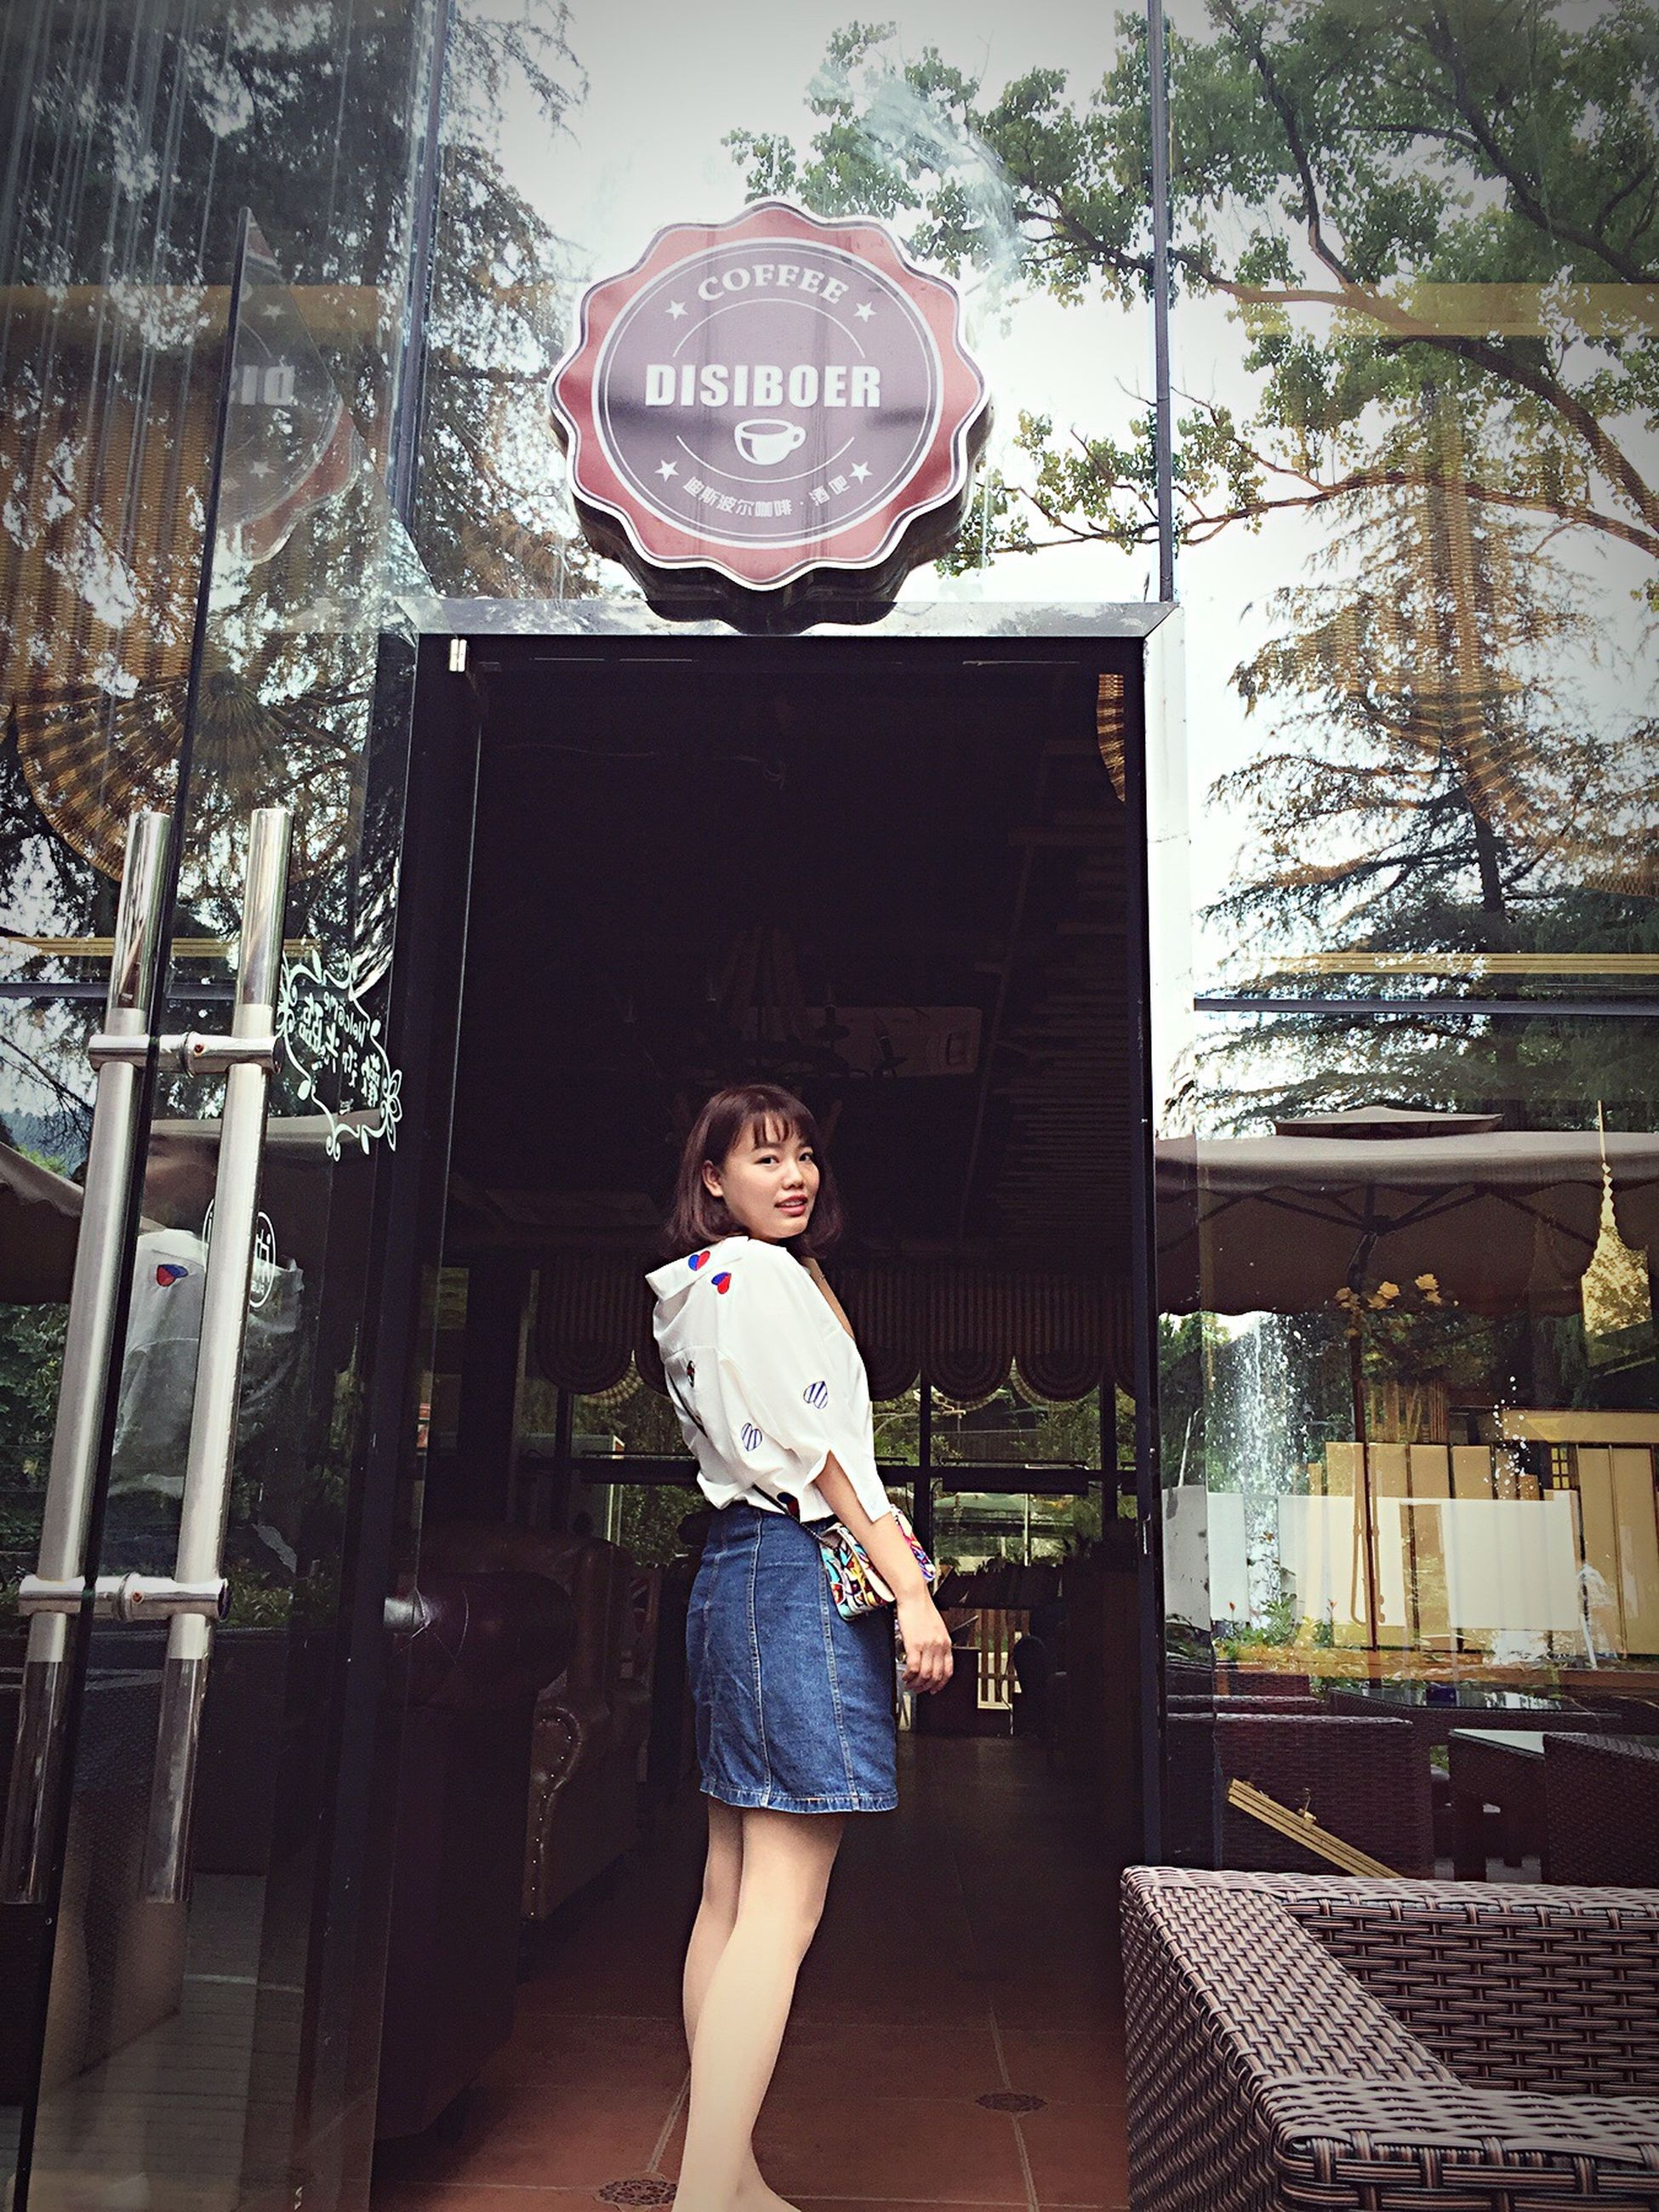 lifestyles, person, young adult, casual clothing, building exterior, architecture, built structure, full length, standing, leisure activity, front view, young women, looking at camera, portrait, three quarter length, smiling, happiness